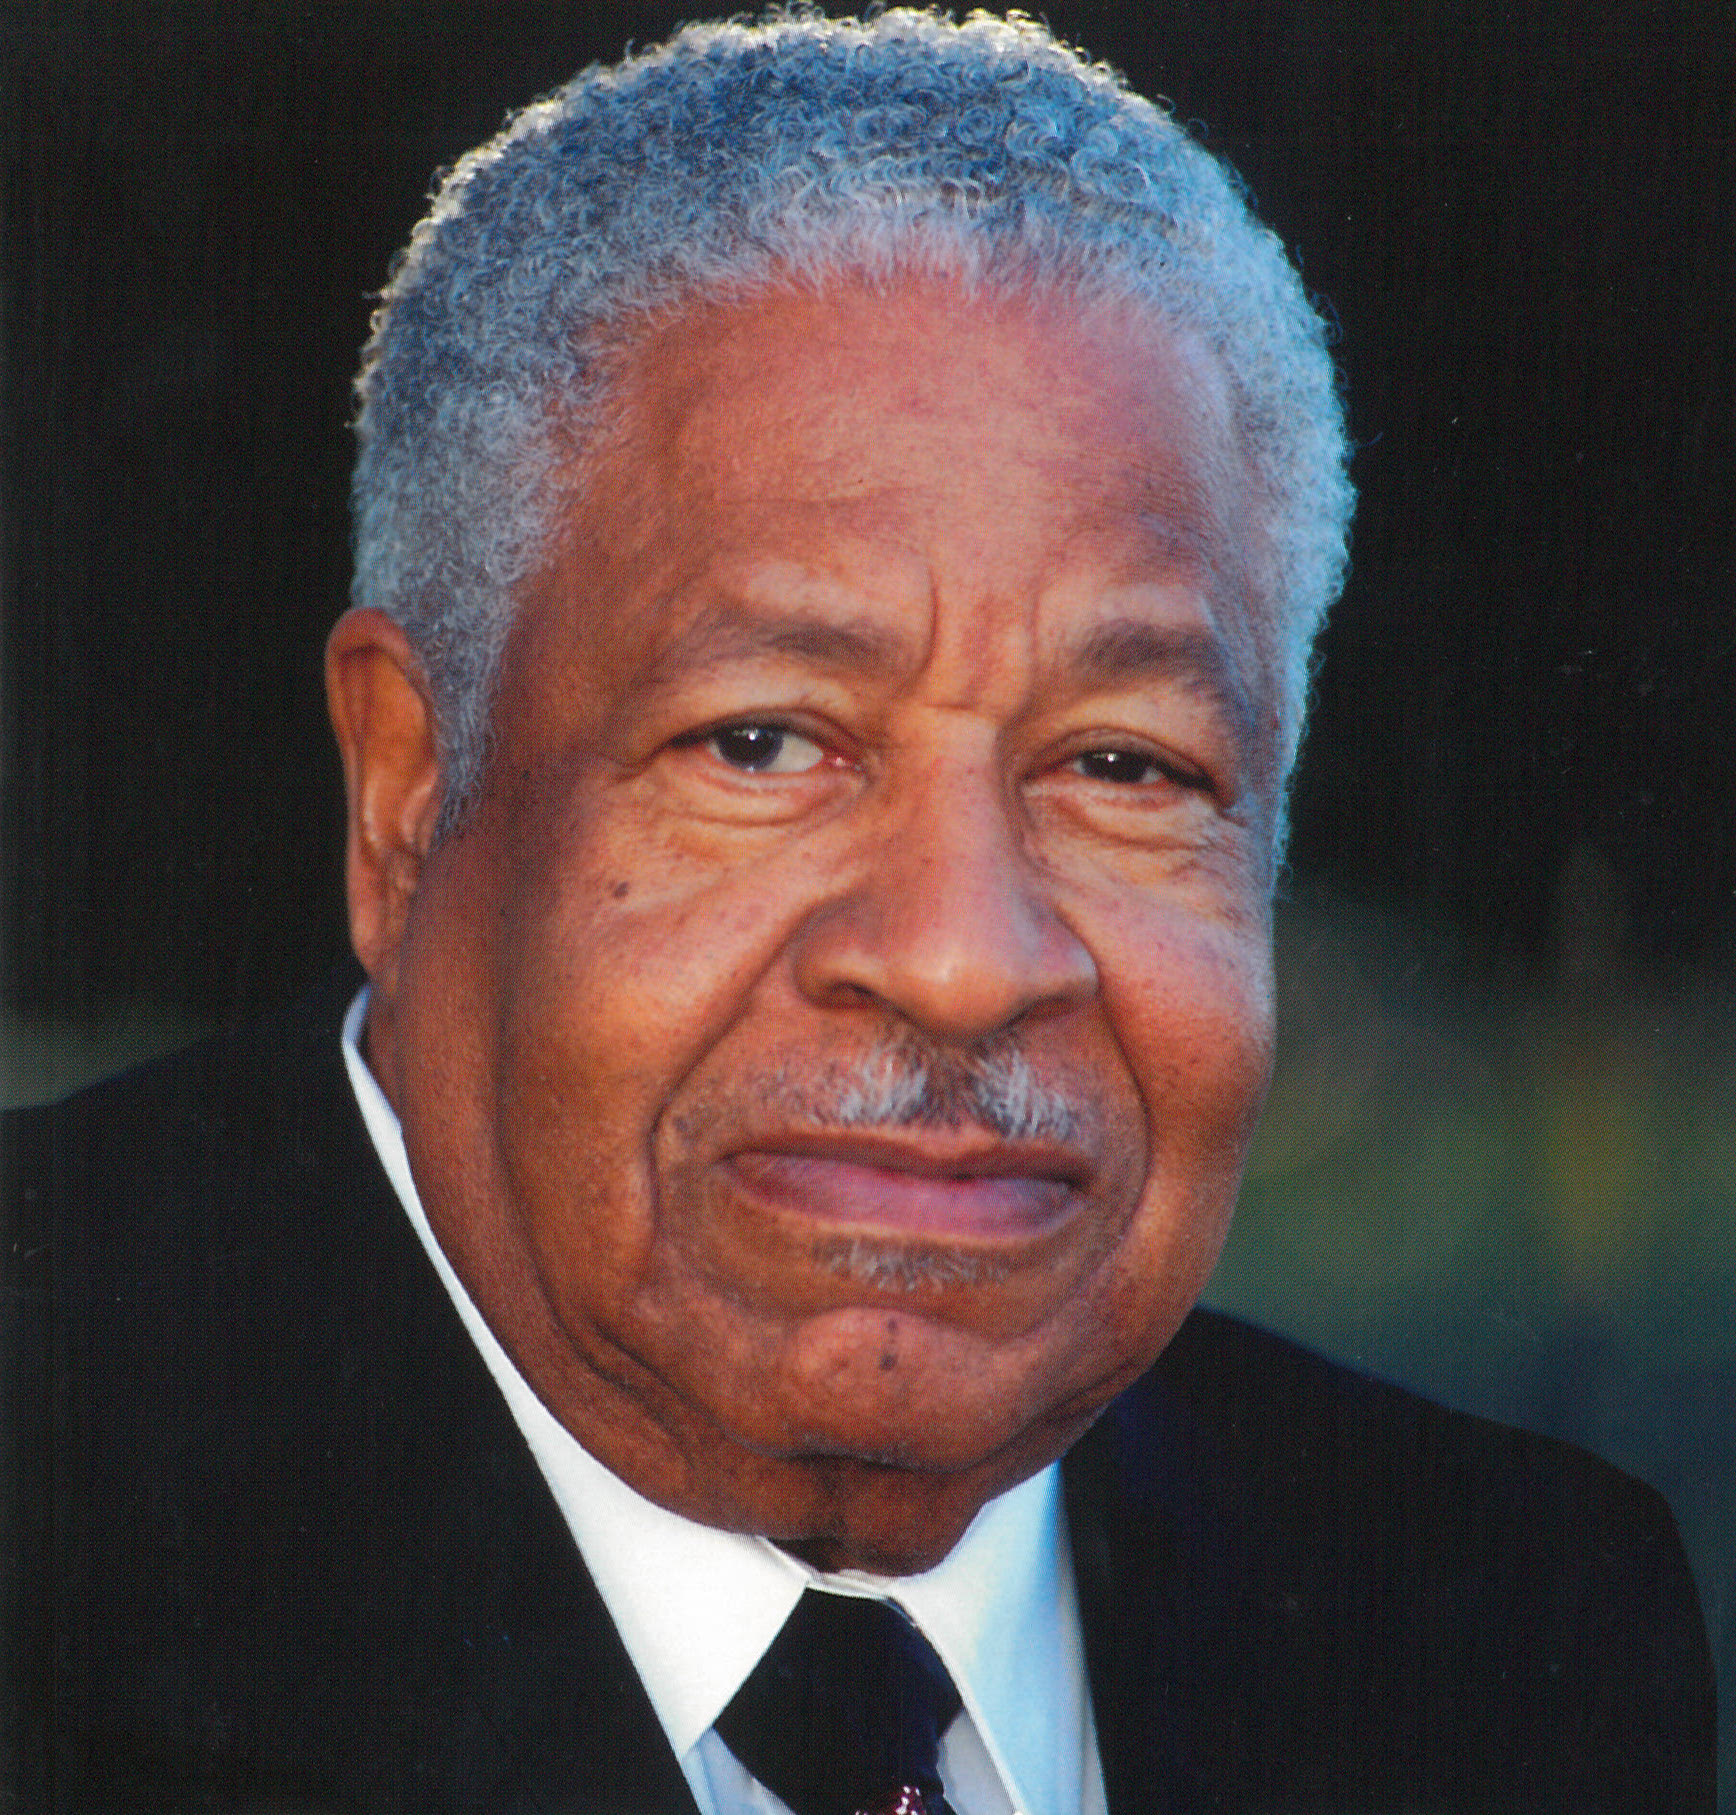 Elder Charles E. Bradford served as the first President of the Seventh-day Adventist Church in North America and the only African American to hold the office to date.